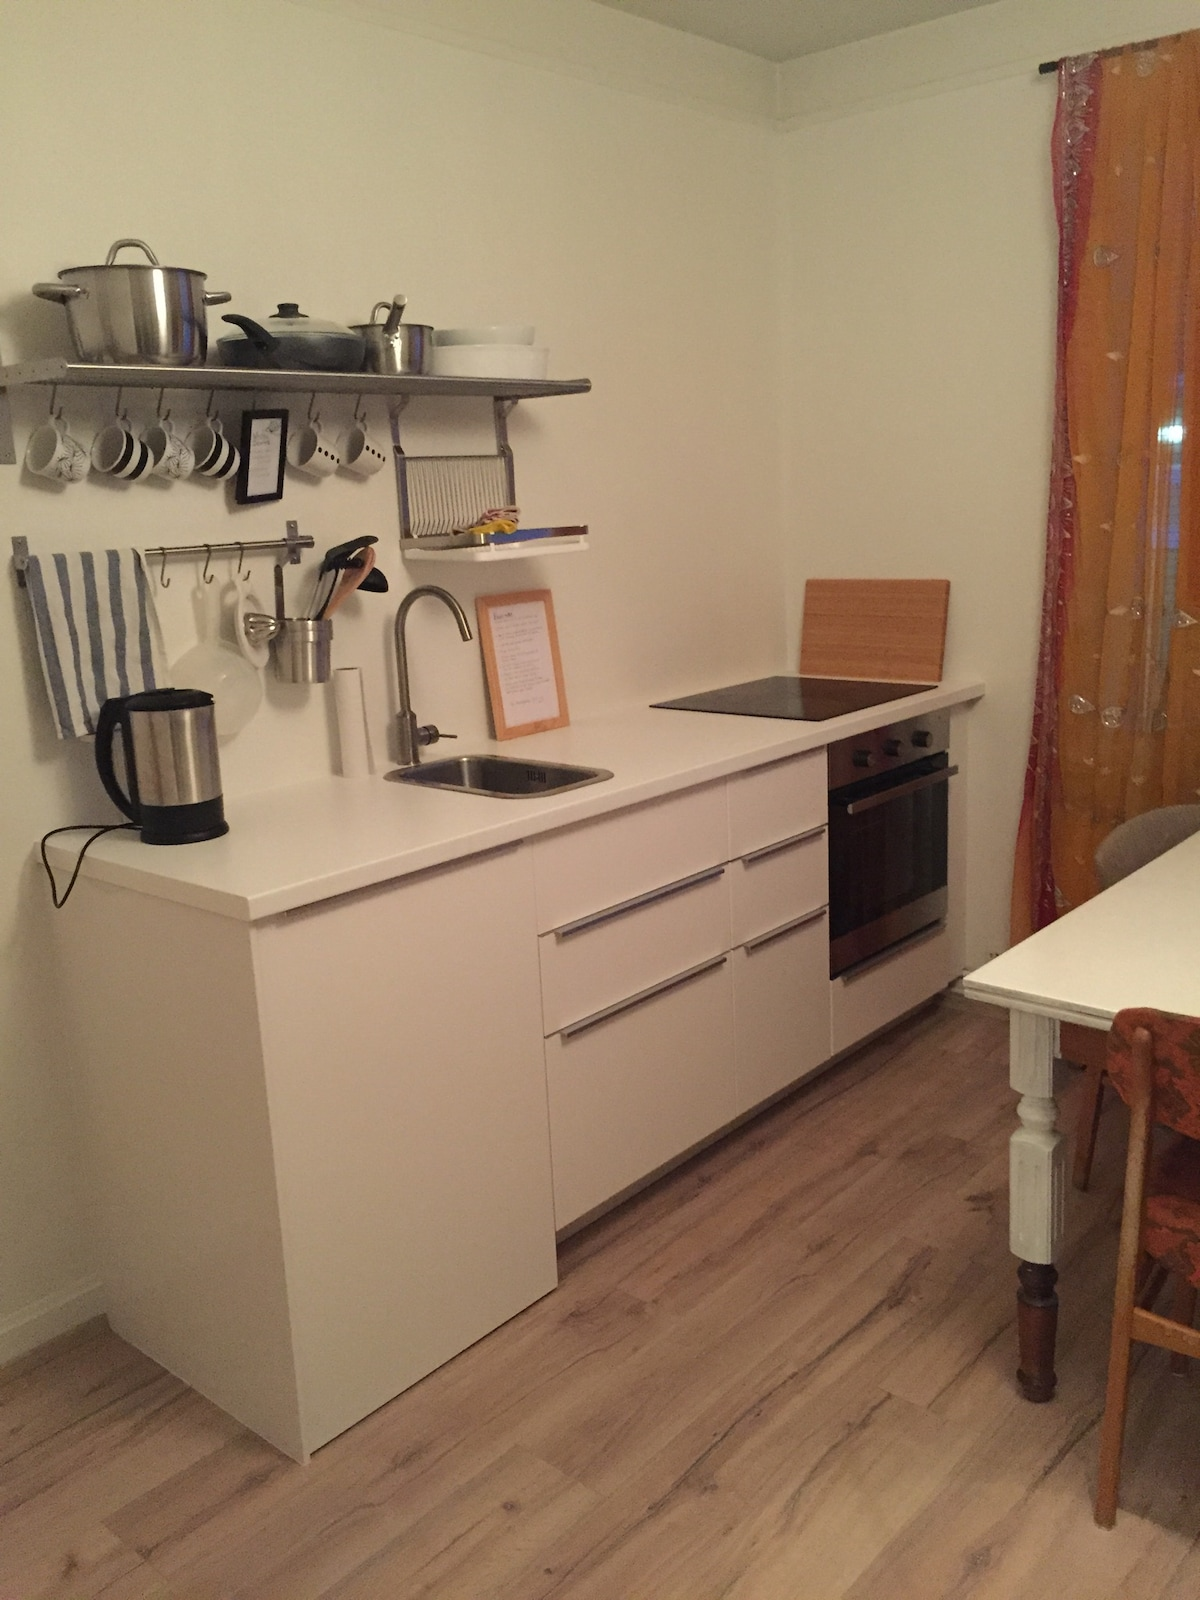 A fully equipt kitchen with a fridge, a stove and an oven.